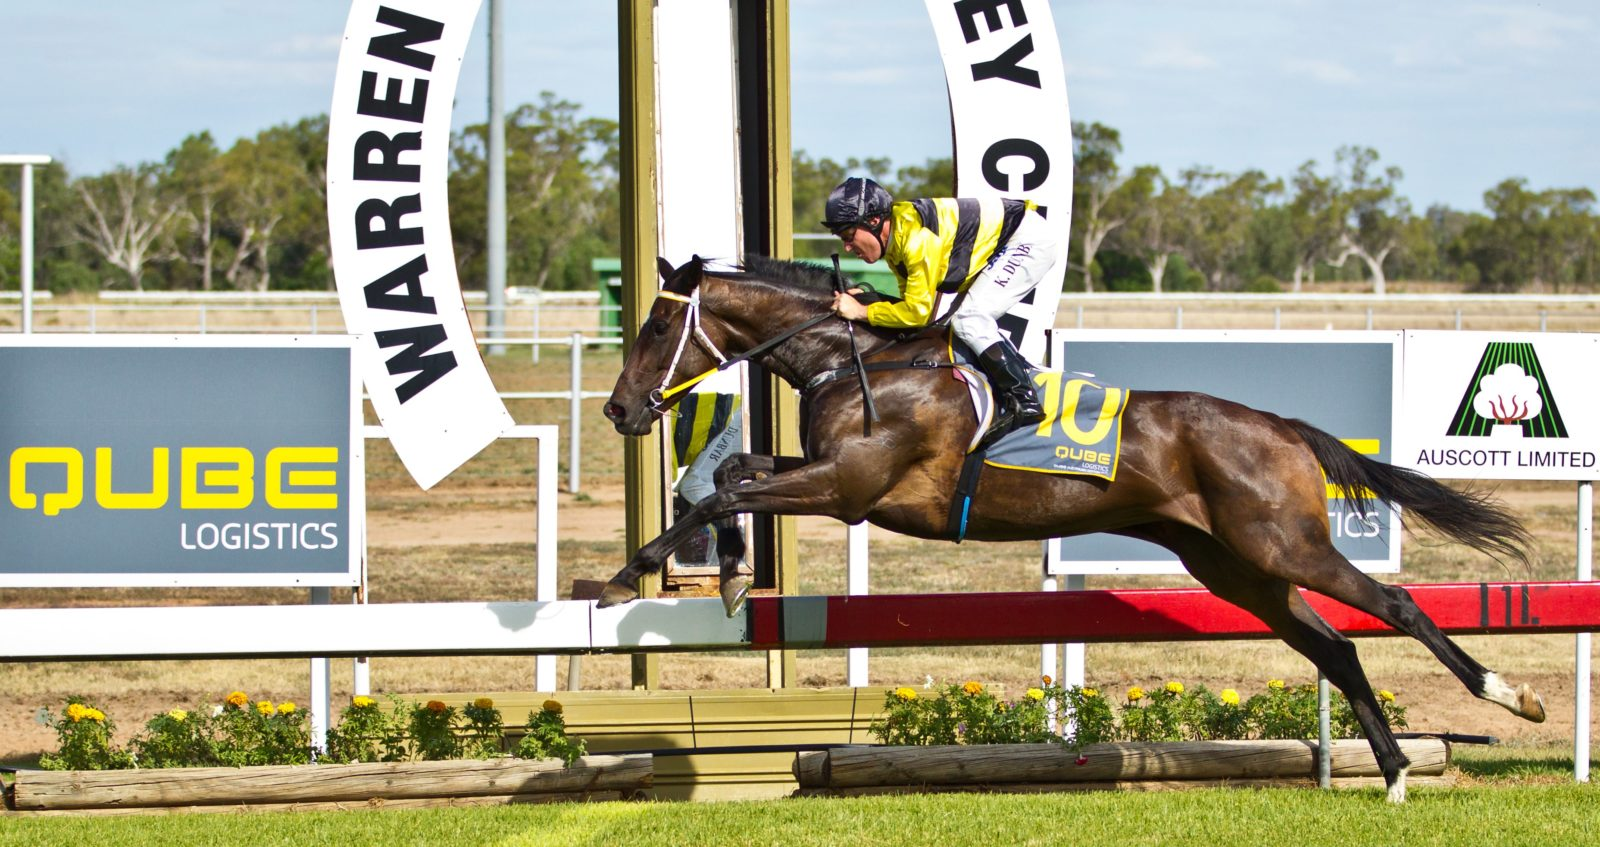 Crossing the finish line at the Warren Racecourse